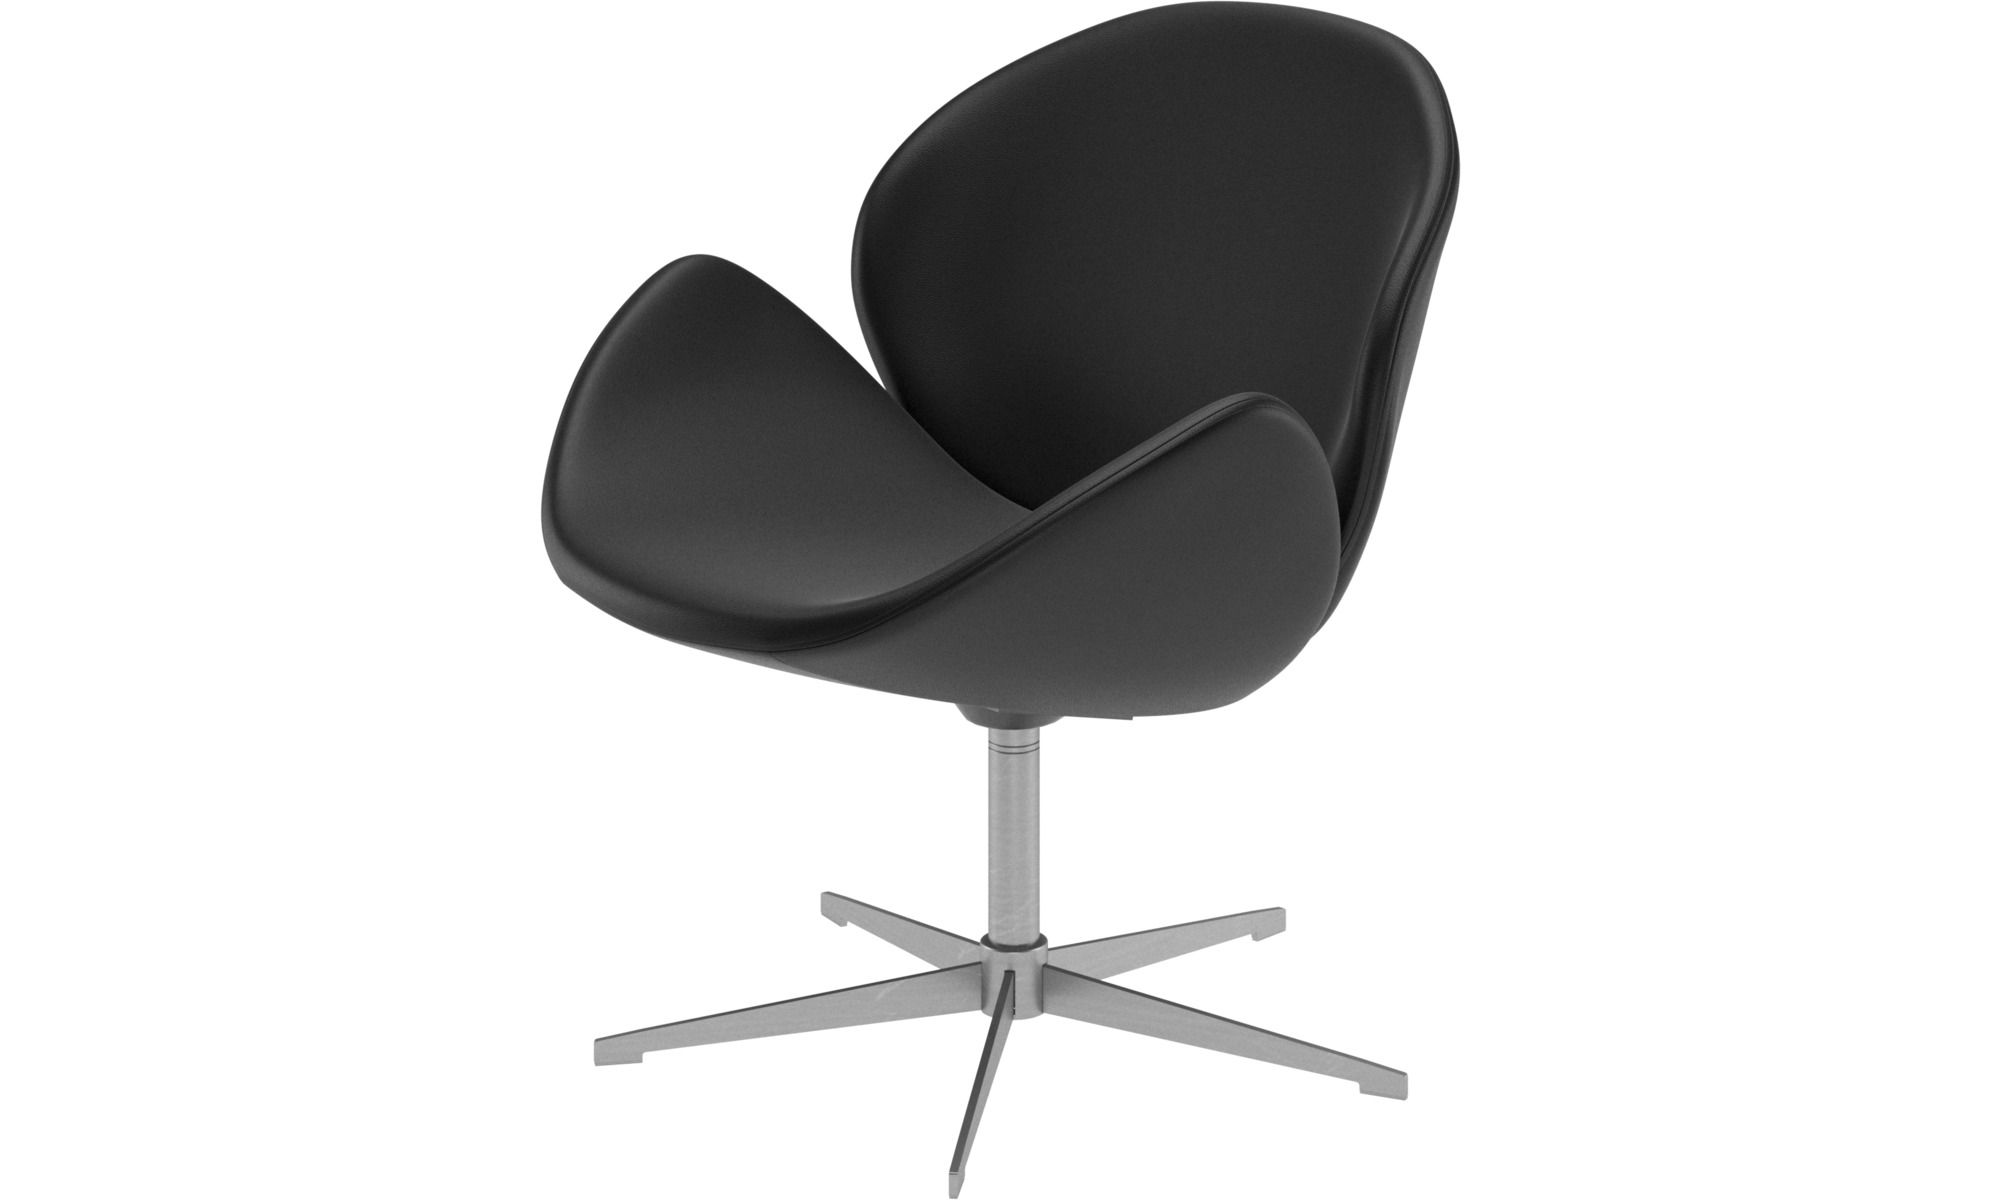 Armchairs - Ogi chair with swivel function - Black - Leather